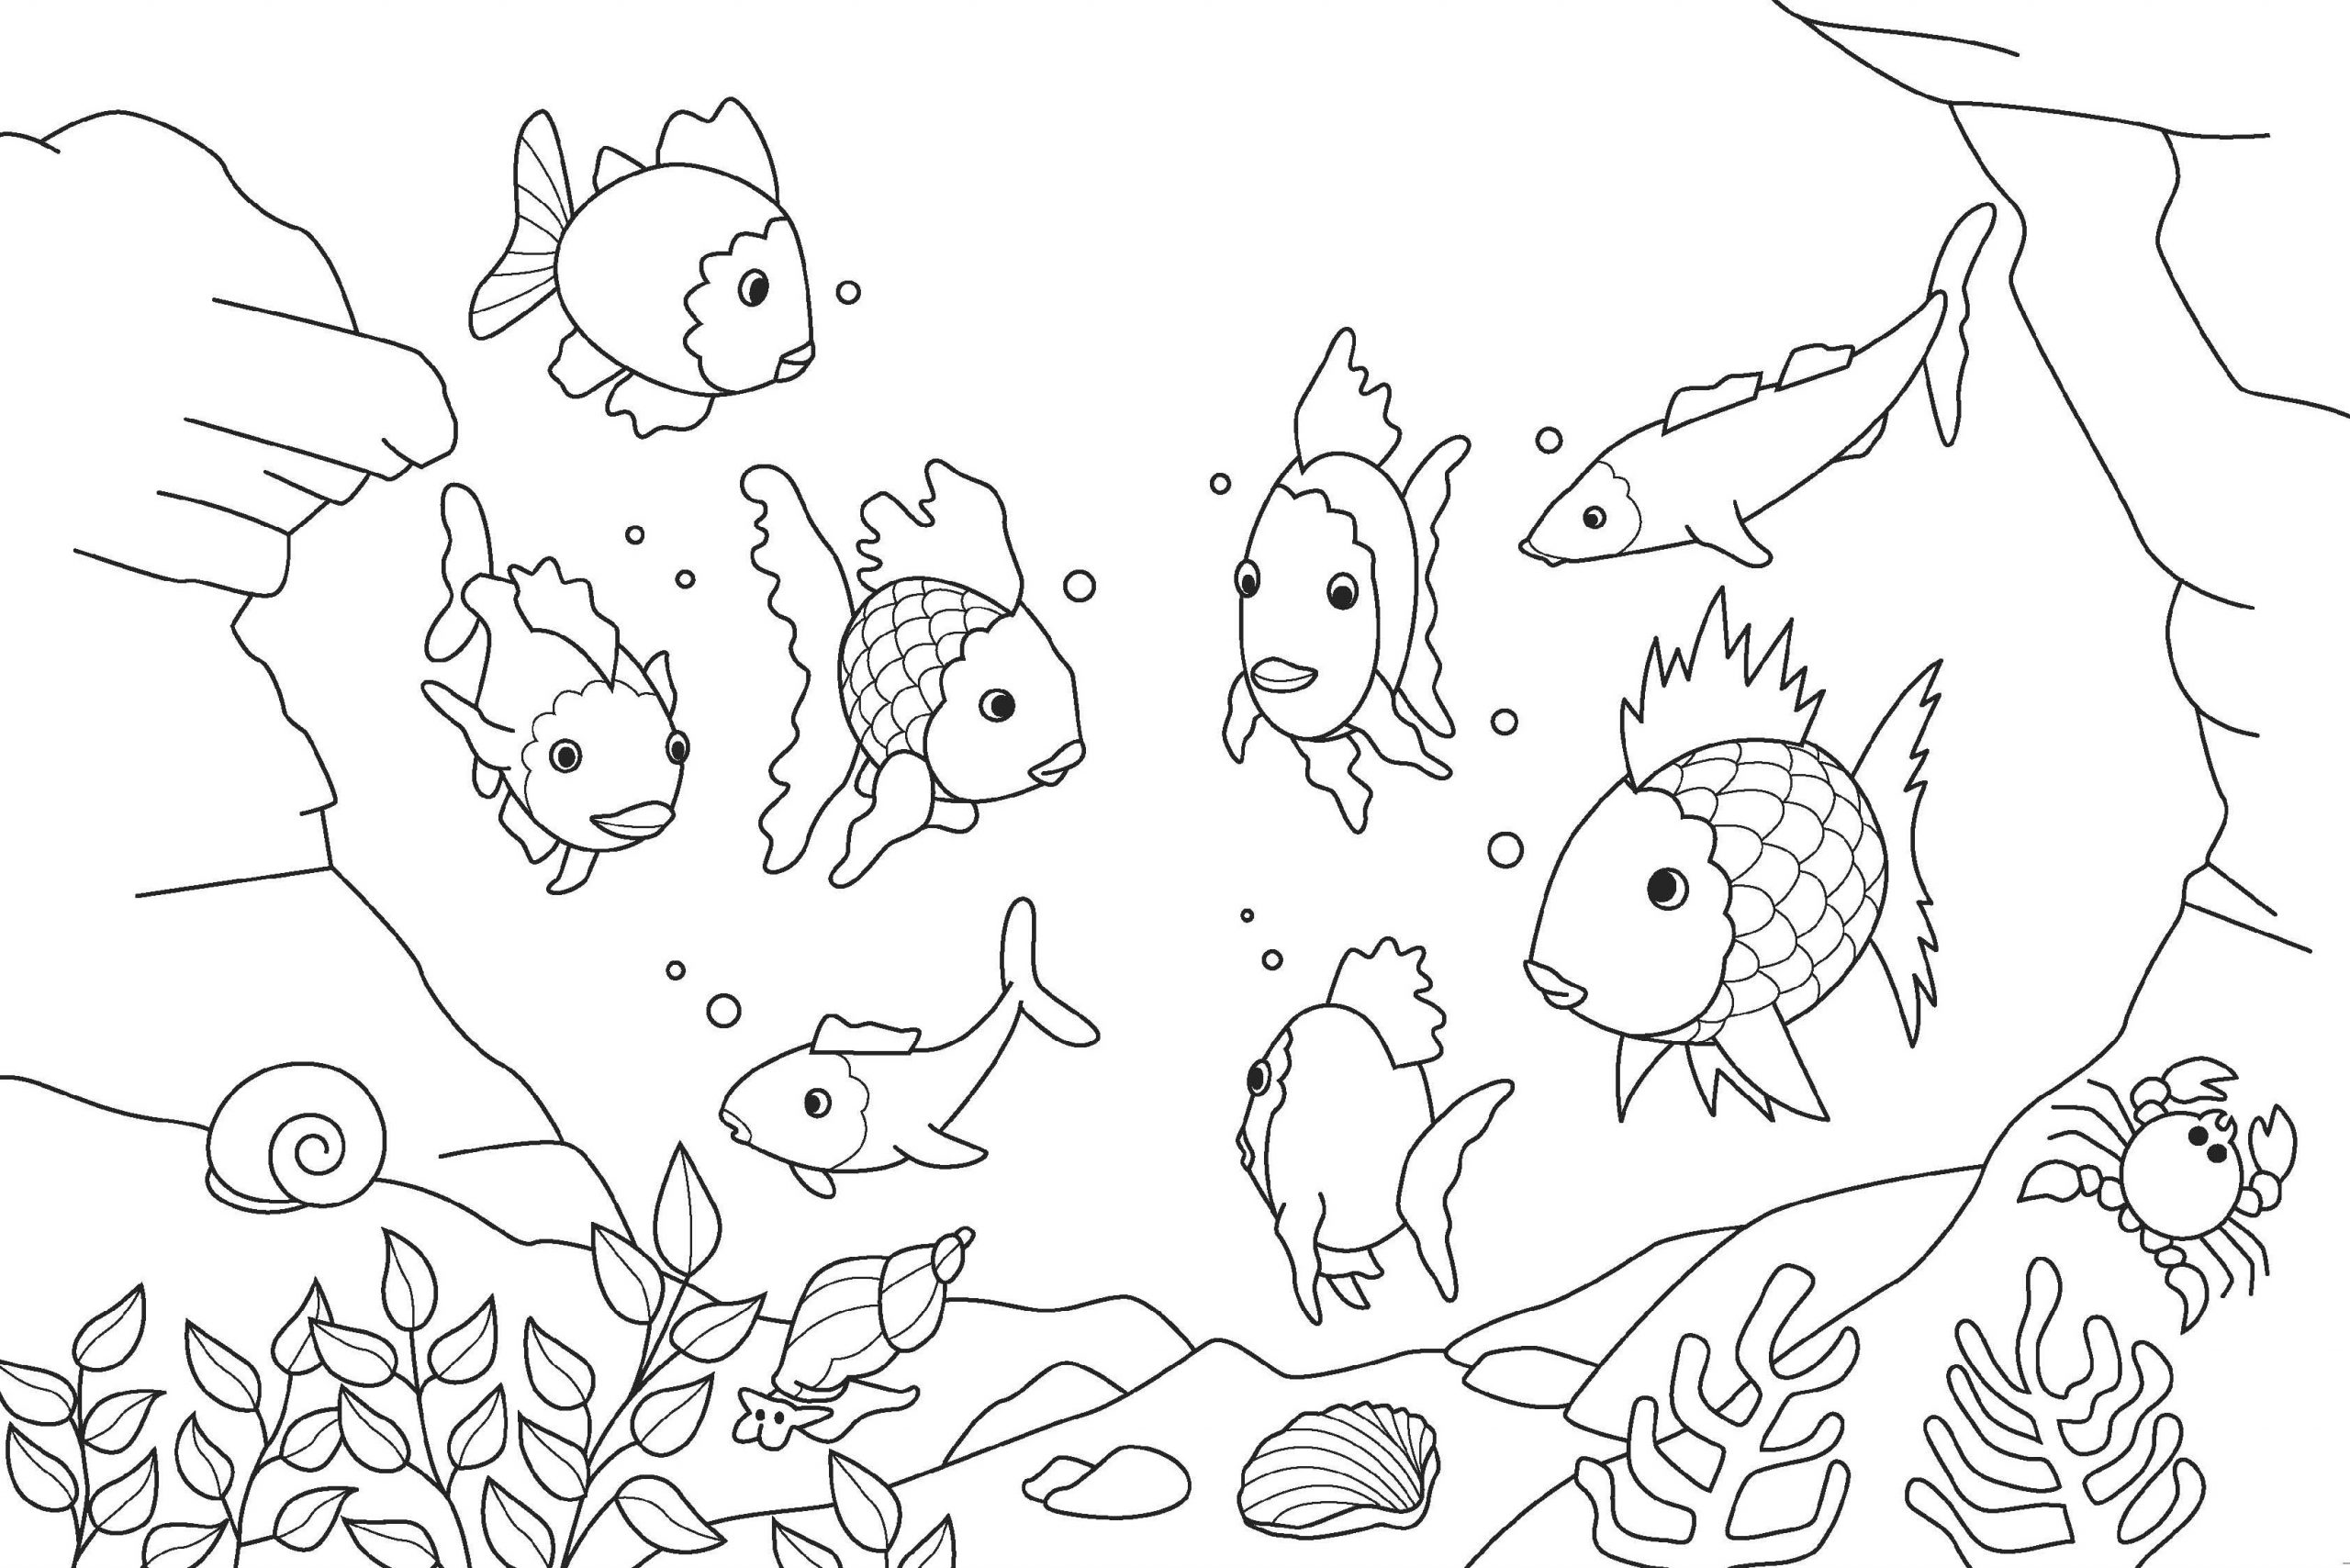 School of Fish Color Sheet